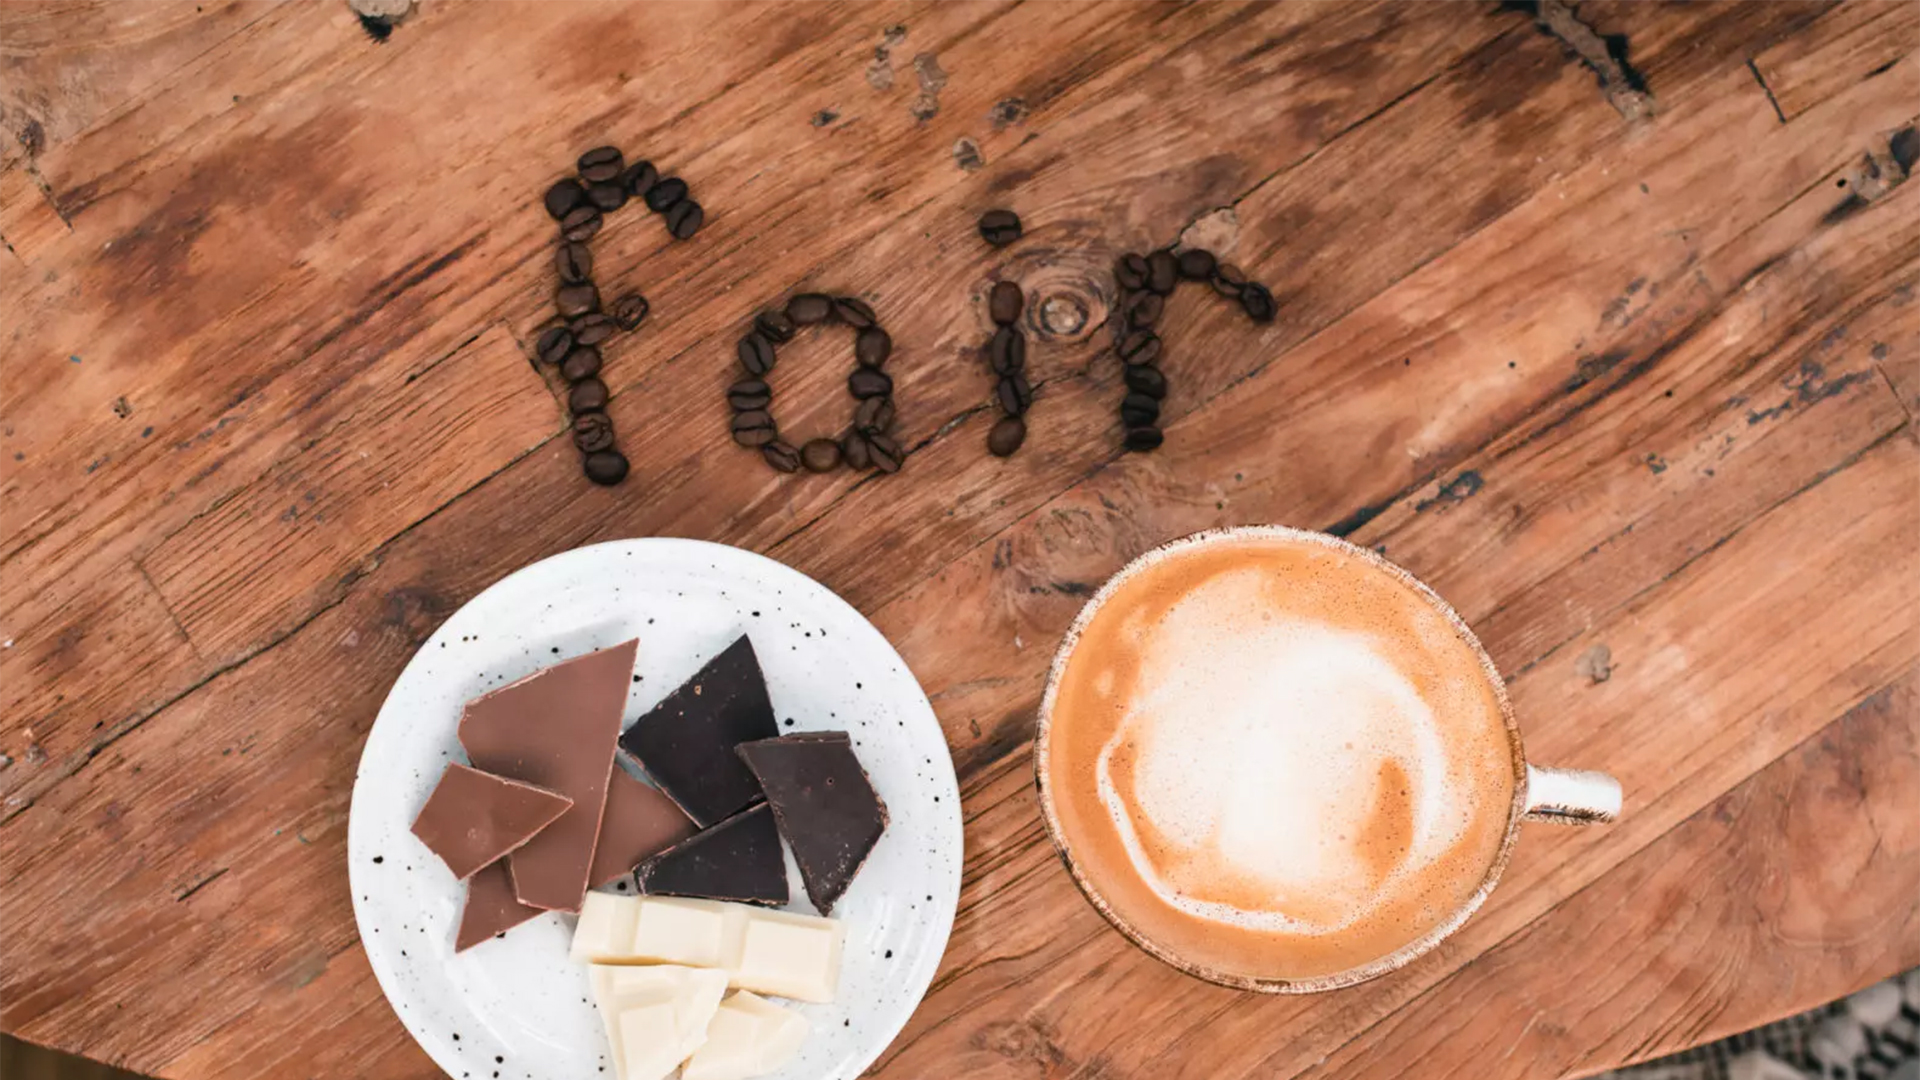 The 9th fair trade principle is the promotion of fair trade (Rosette Network blog)